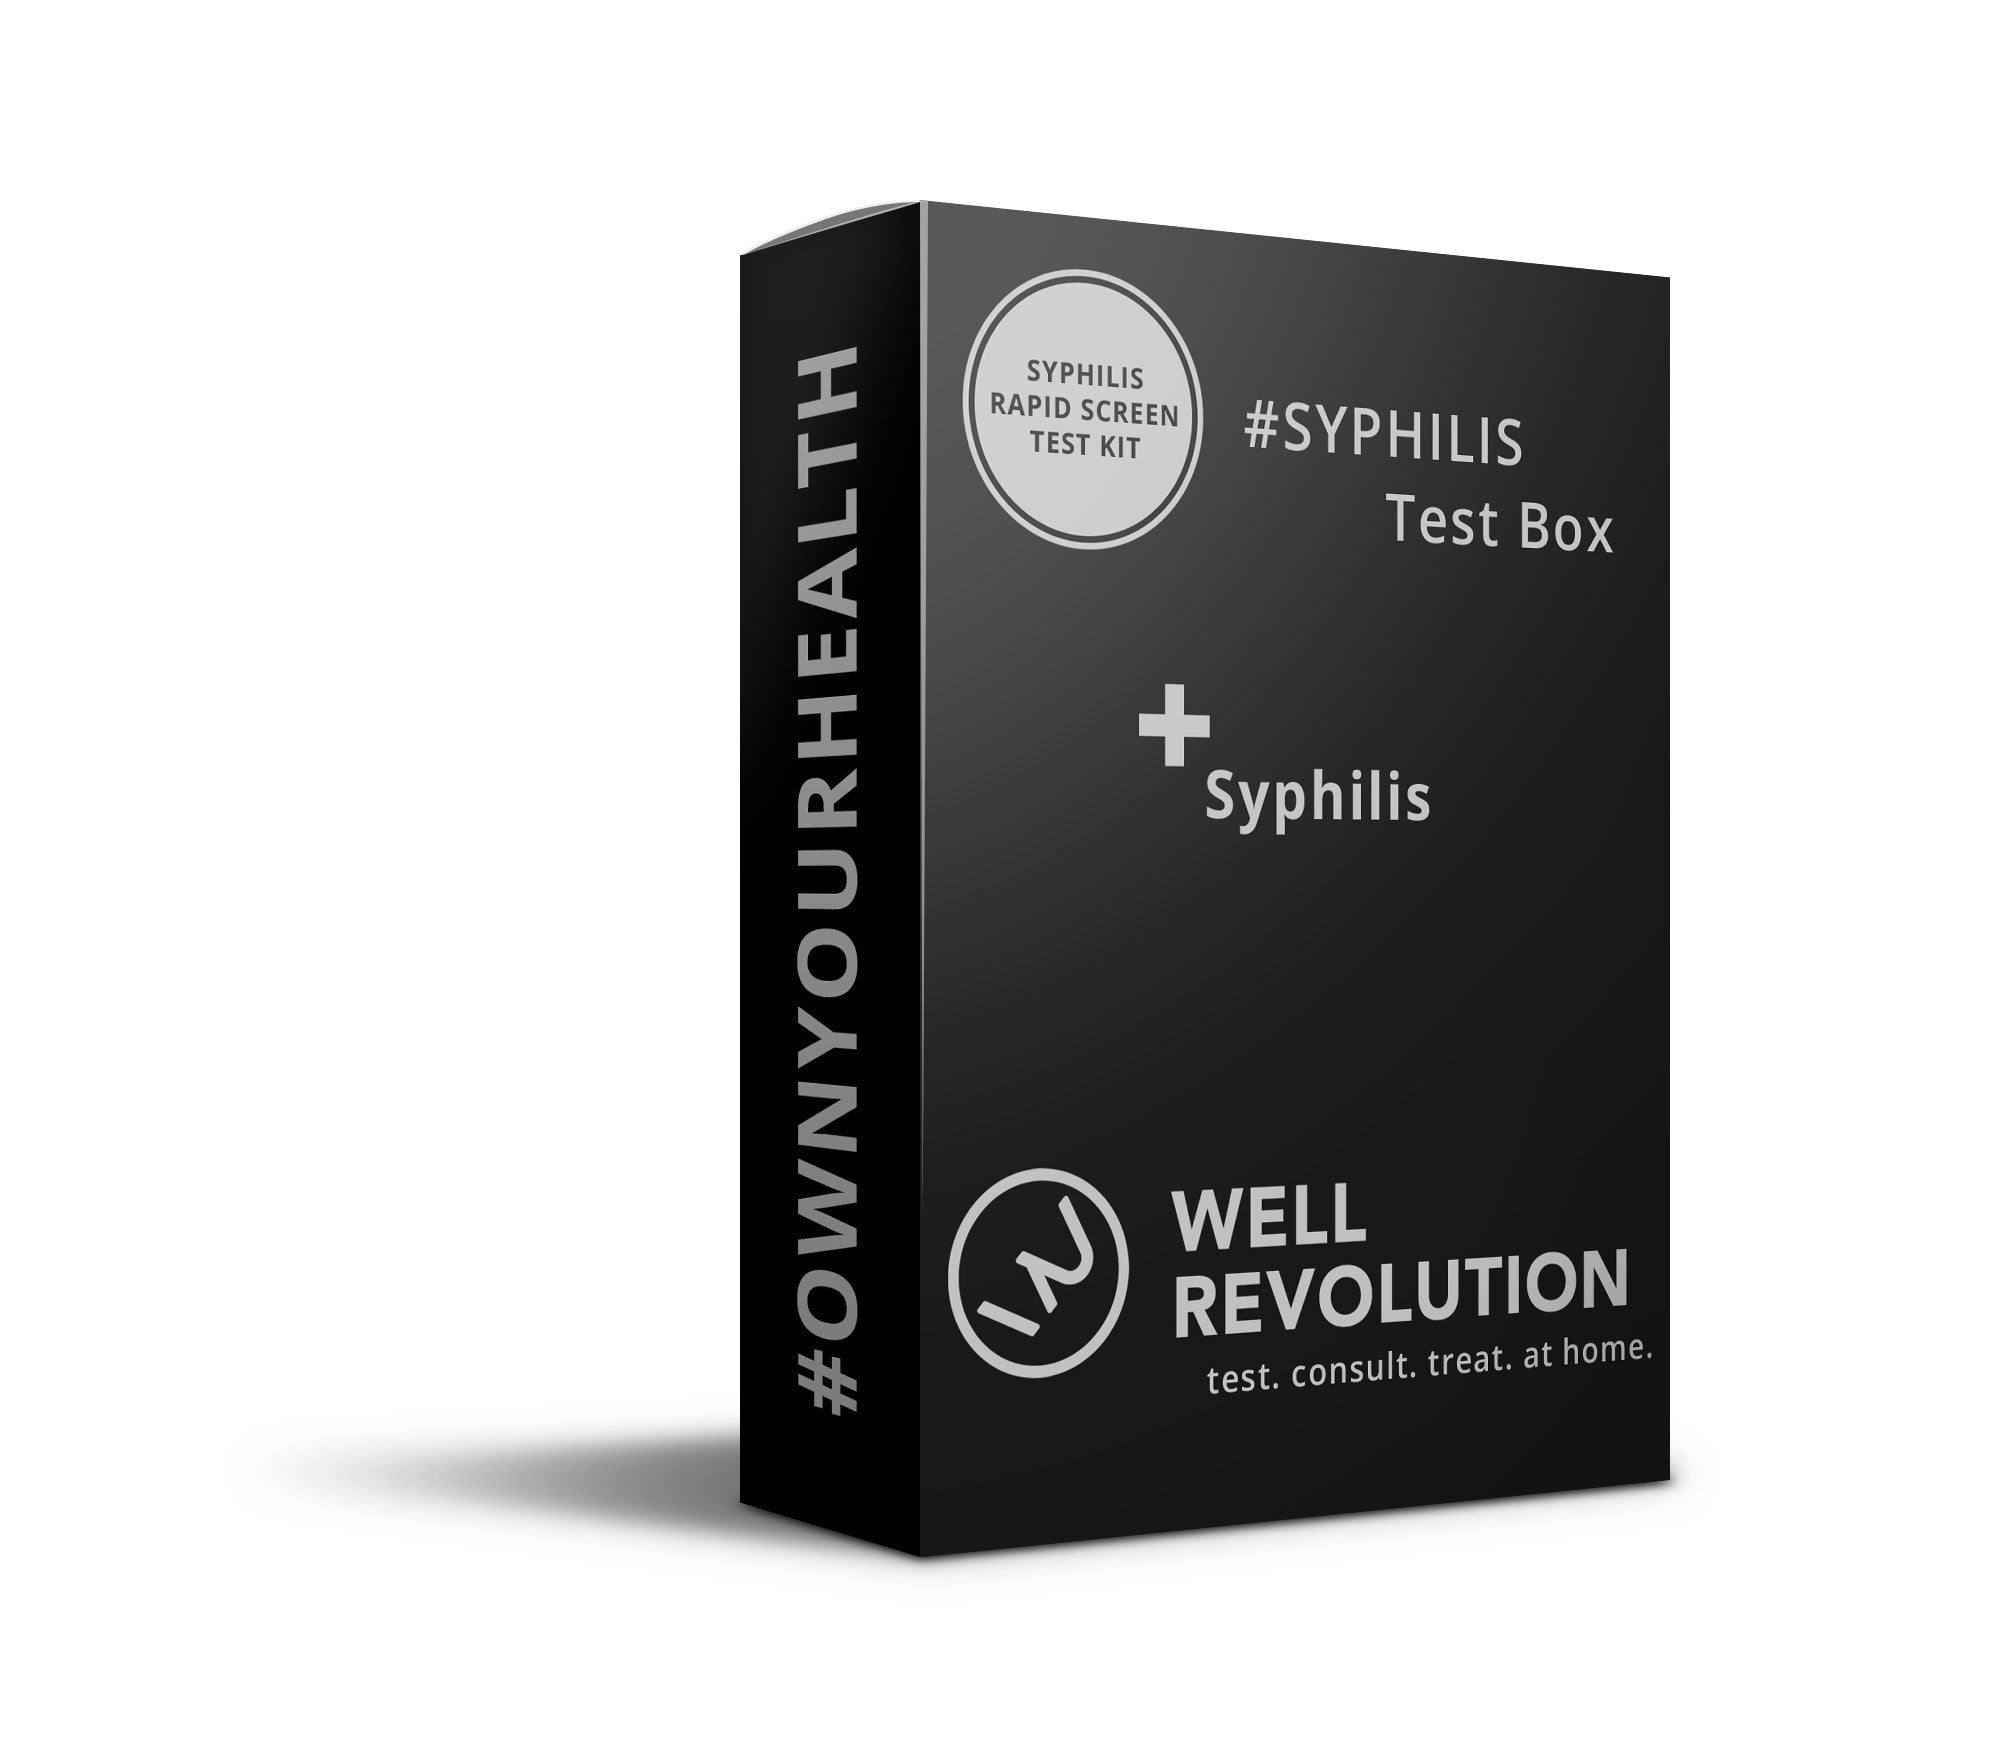 #Syphilis Test Box